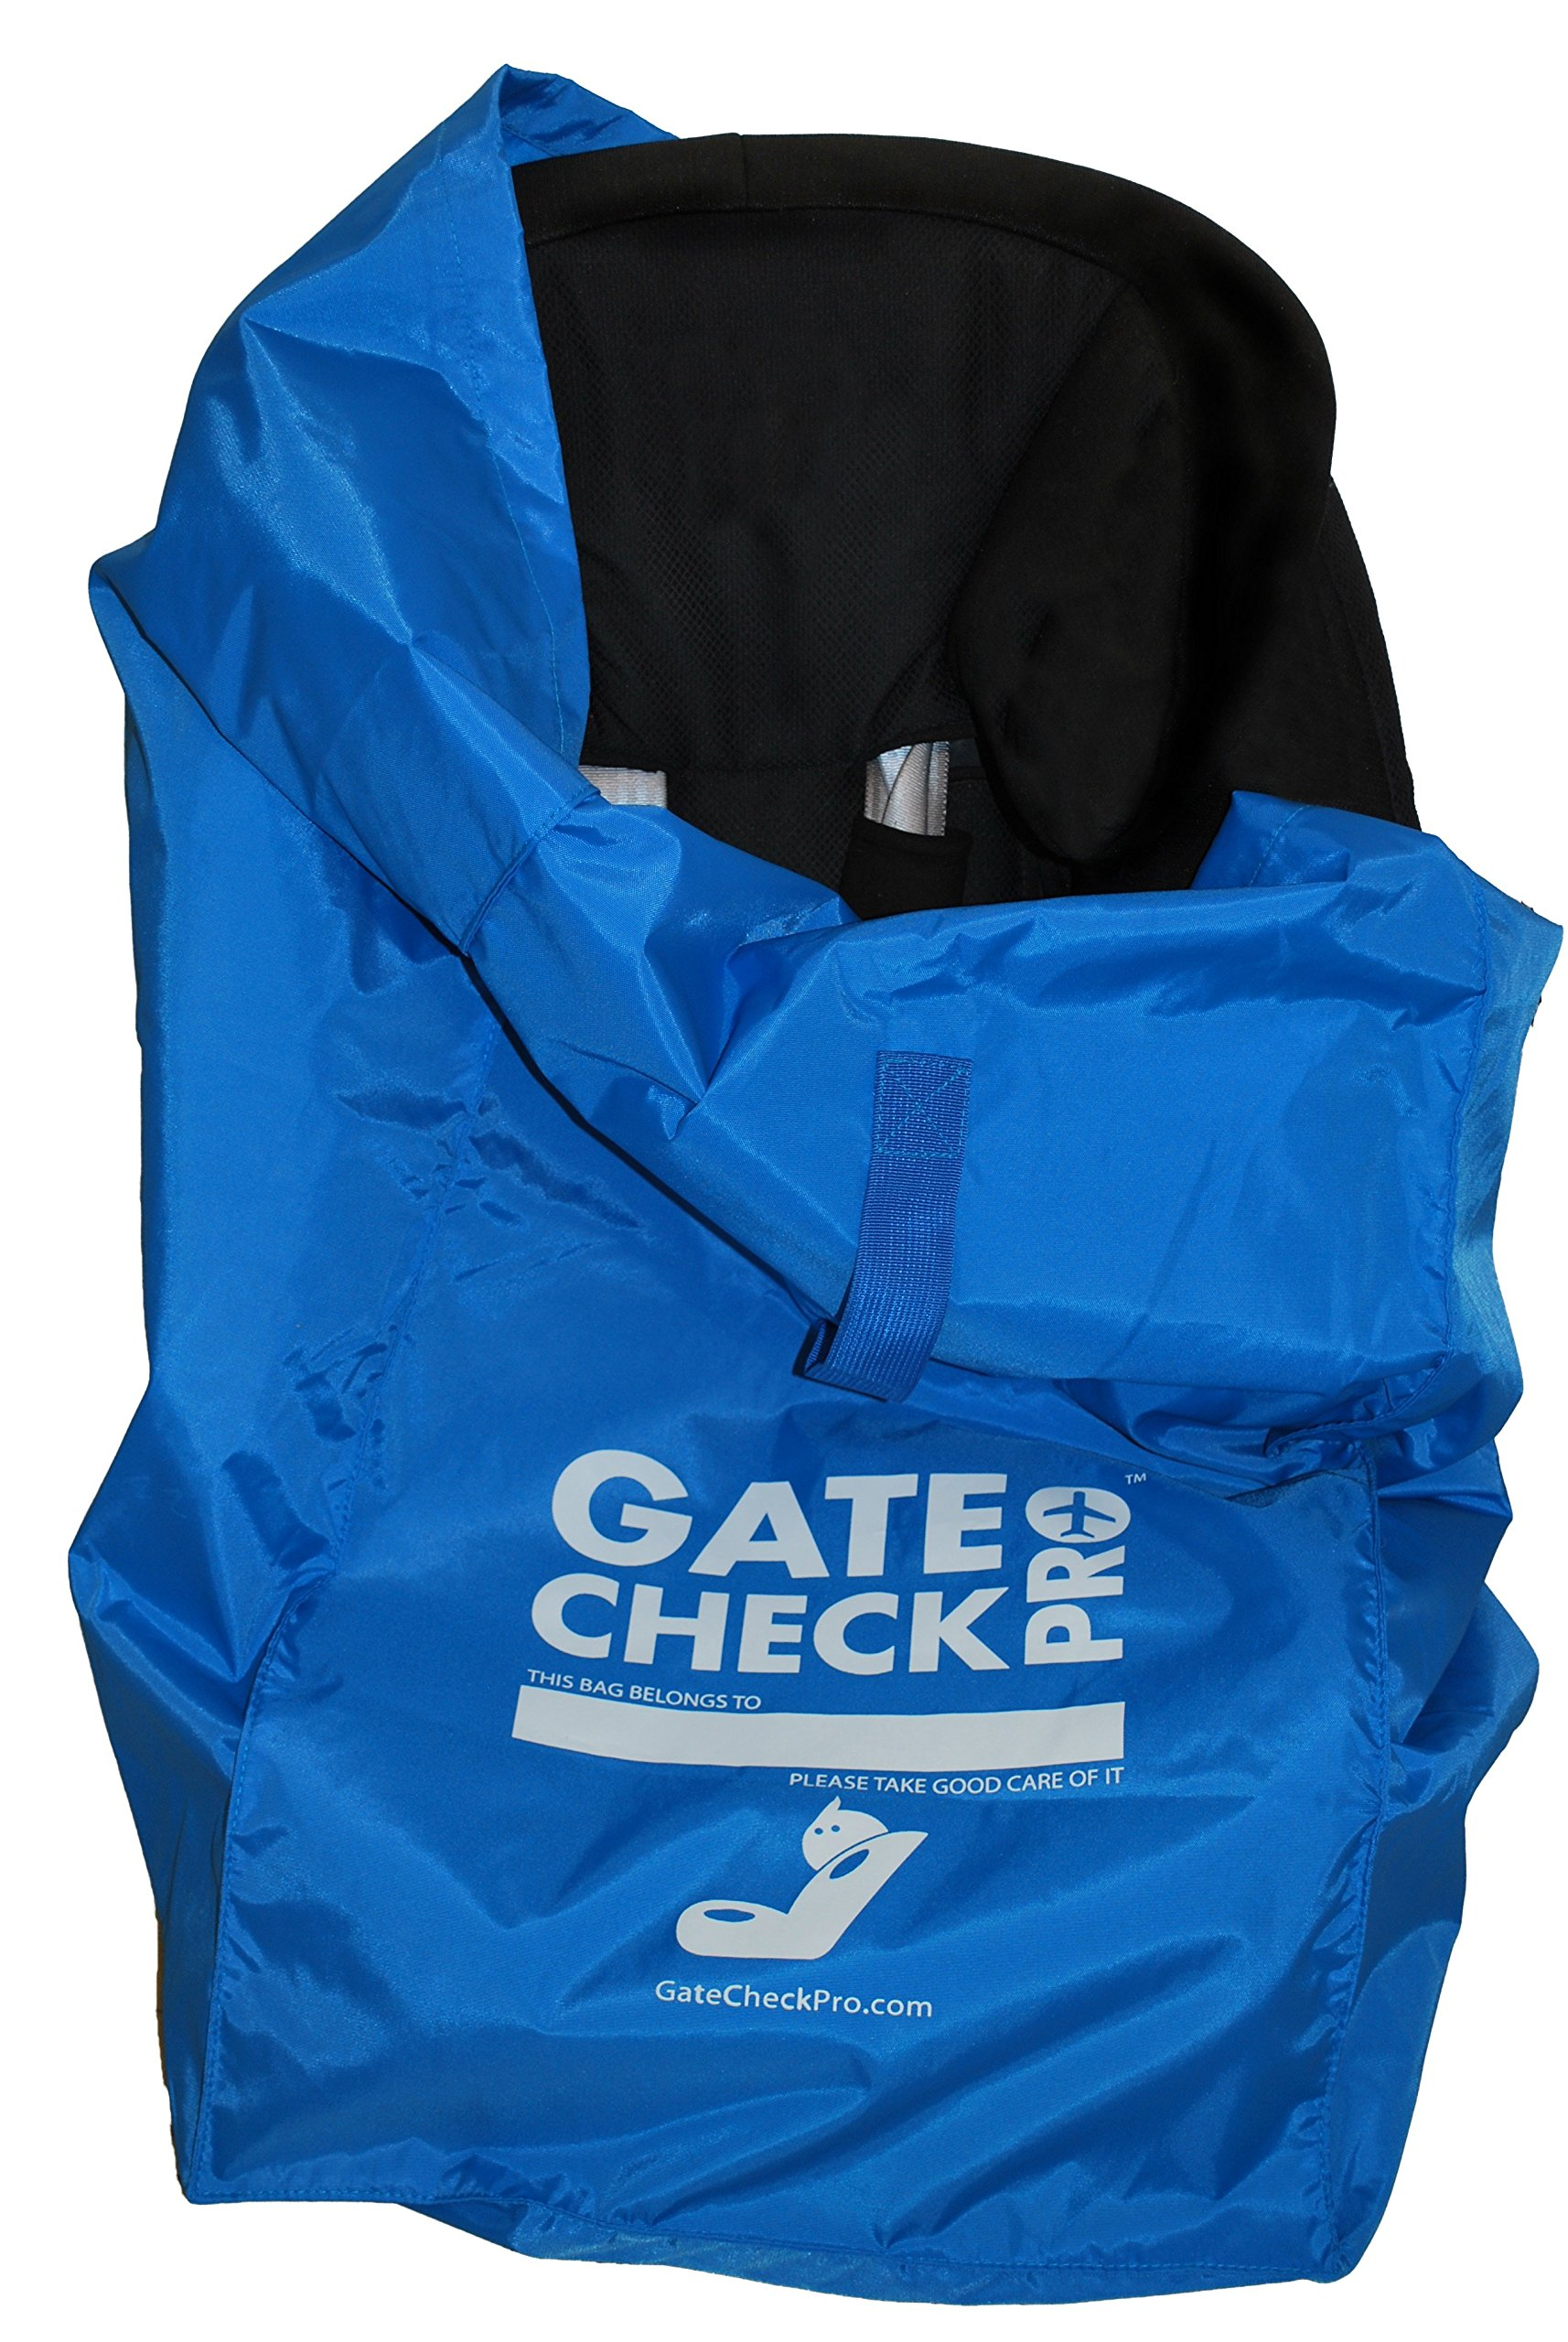 Gate Check PRO Car Seat Carrier & Travel Bag | Ultra Durable & Lightweight Ballistic Nylon | One Size Fits Most | Inc. Infant, Toddler & All-in-one Convertible Models | Perfect for Stress Free Travel!  GATE CHECK PRO: luxury protection for your child - avoid germs, grease, grime and weather in the cargo areas and tarmac of airports. If boarding agents think it's a good idea, you can be sure that this is one! They have seen everything that can happen to your car seat in there! NYLON BALLISTIC SUSTAINABLE: This is the same nylon used by the armed forces to protect troops before the invention of Kevlar. There simply is no better carry bag for compact, lightweight car seat. Constructed to very high standards - we are parents and understand how the well-being of your children you care. A clean car seat and well adjusted = happy kids! PEACE OF MIND: Arrive at your destination with one less worry - no risk that the car rental company gives you a poorly adjusted or dirty seat. Traveling with children is stressful enough without the additional worry! 1